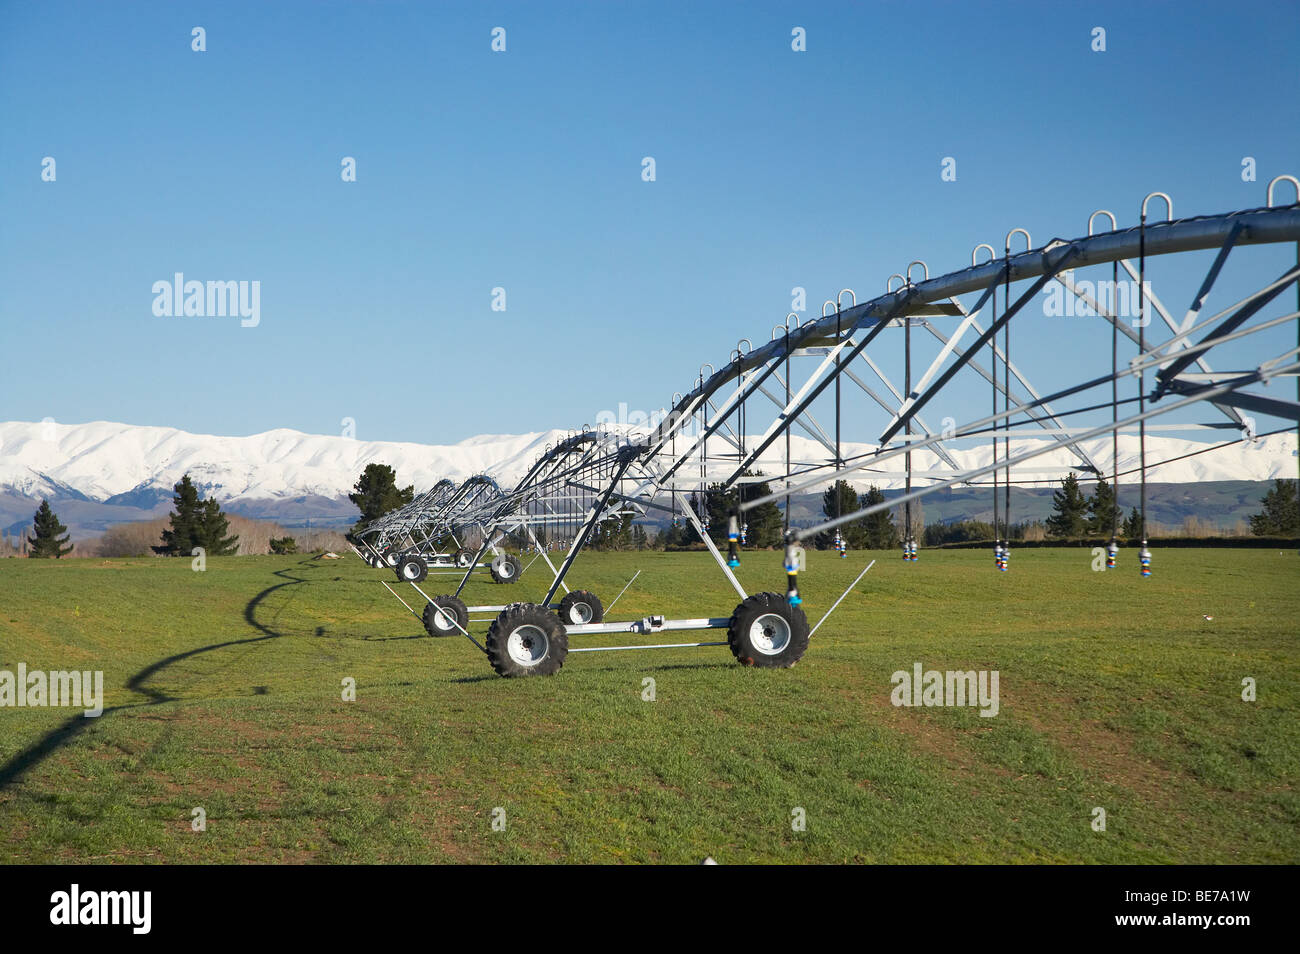 Centre Pivot Irrigation and Snowy Mountains near Pleasant Point, South Canterbury, South Island, New Zealand - Stock Image